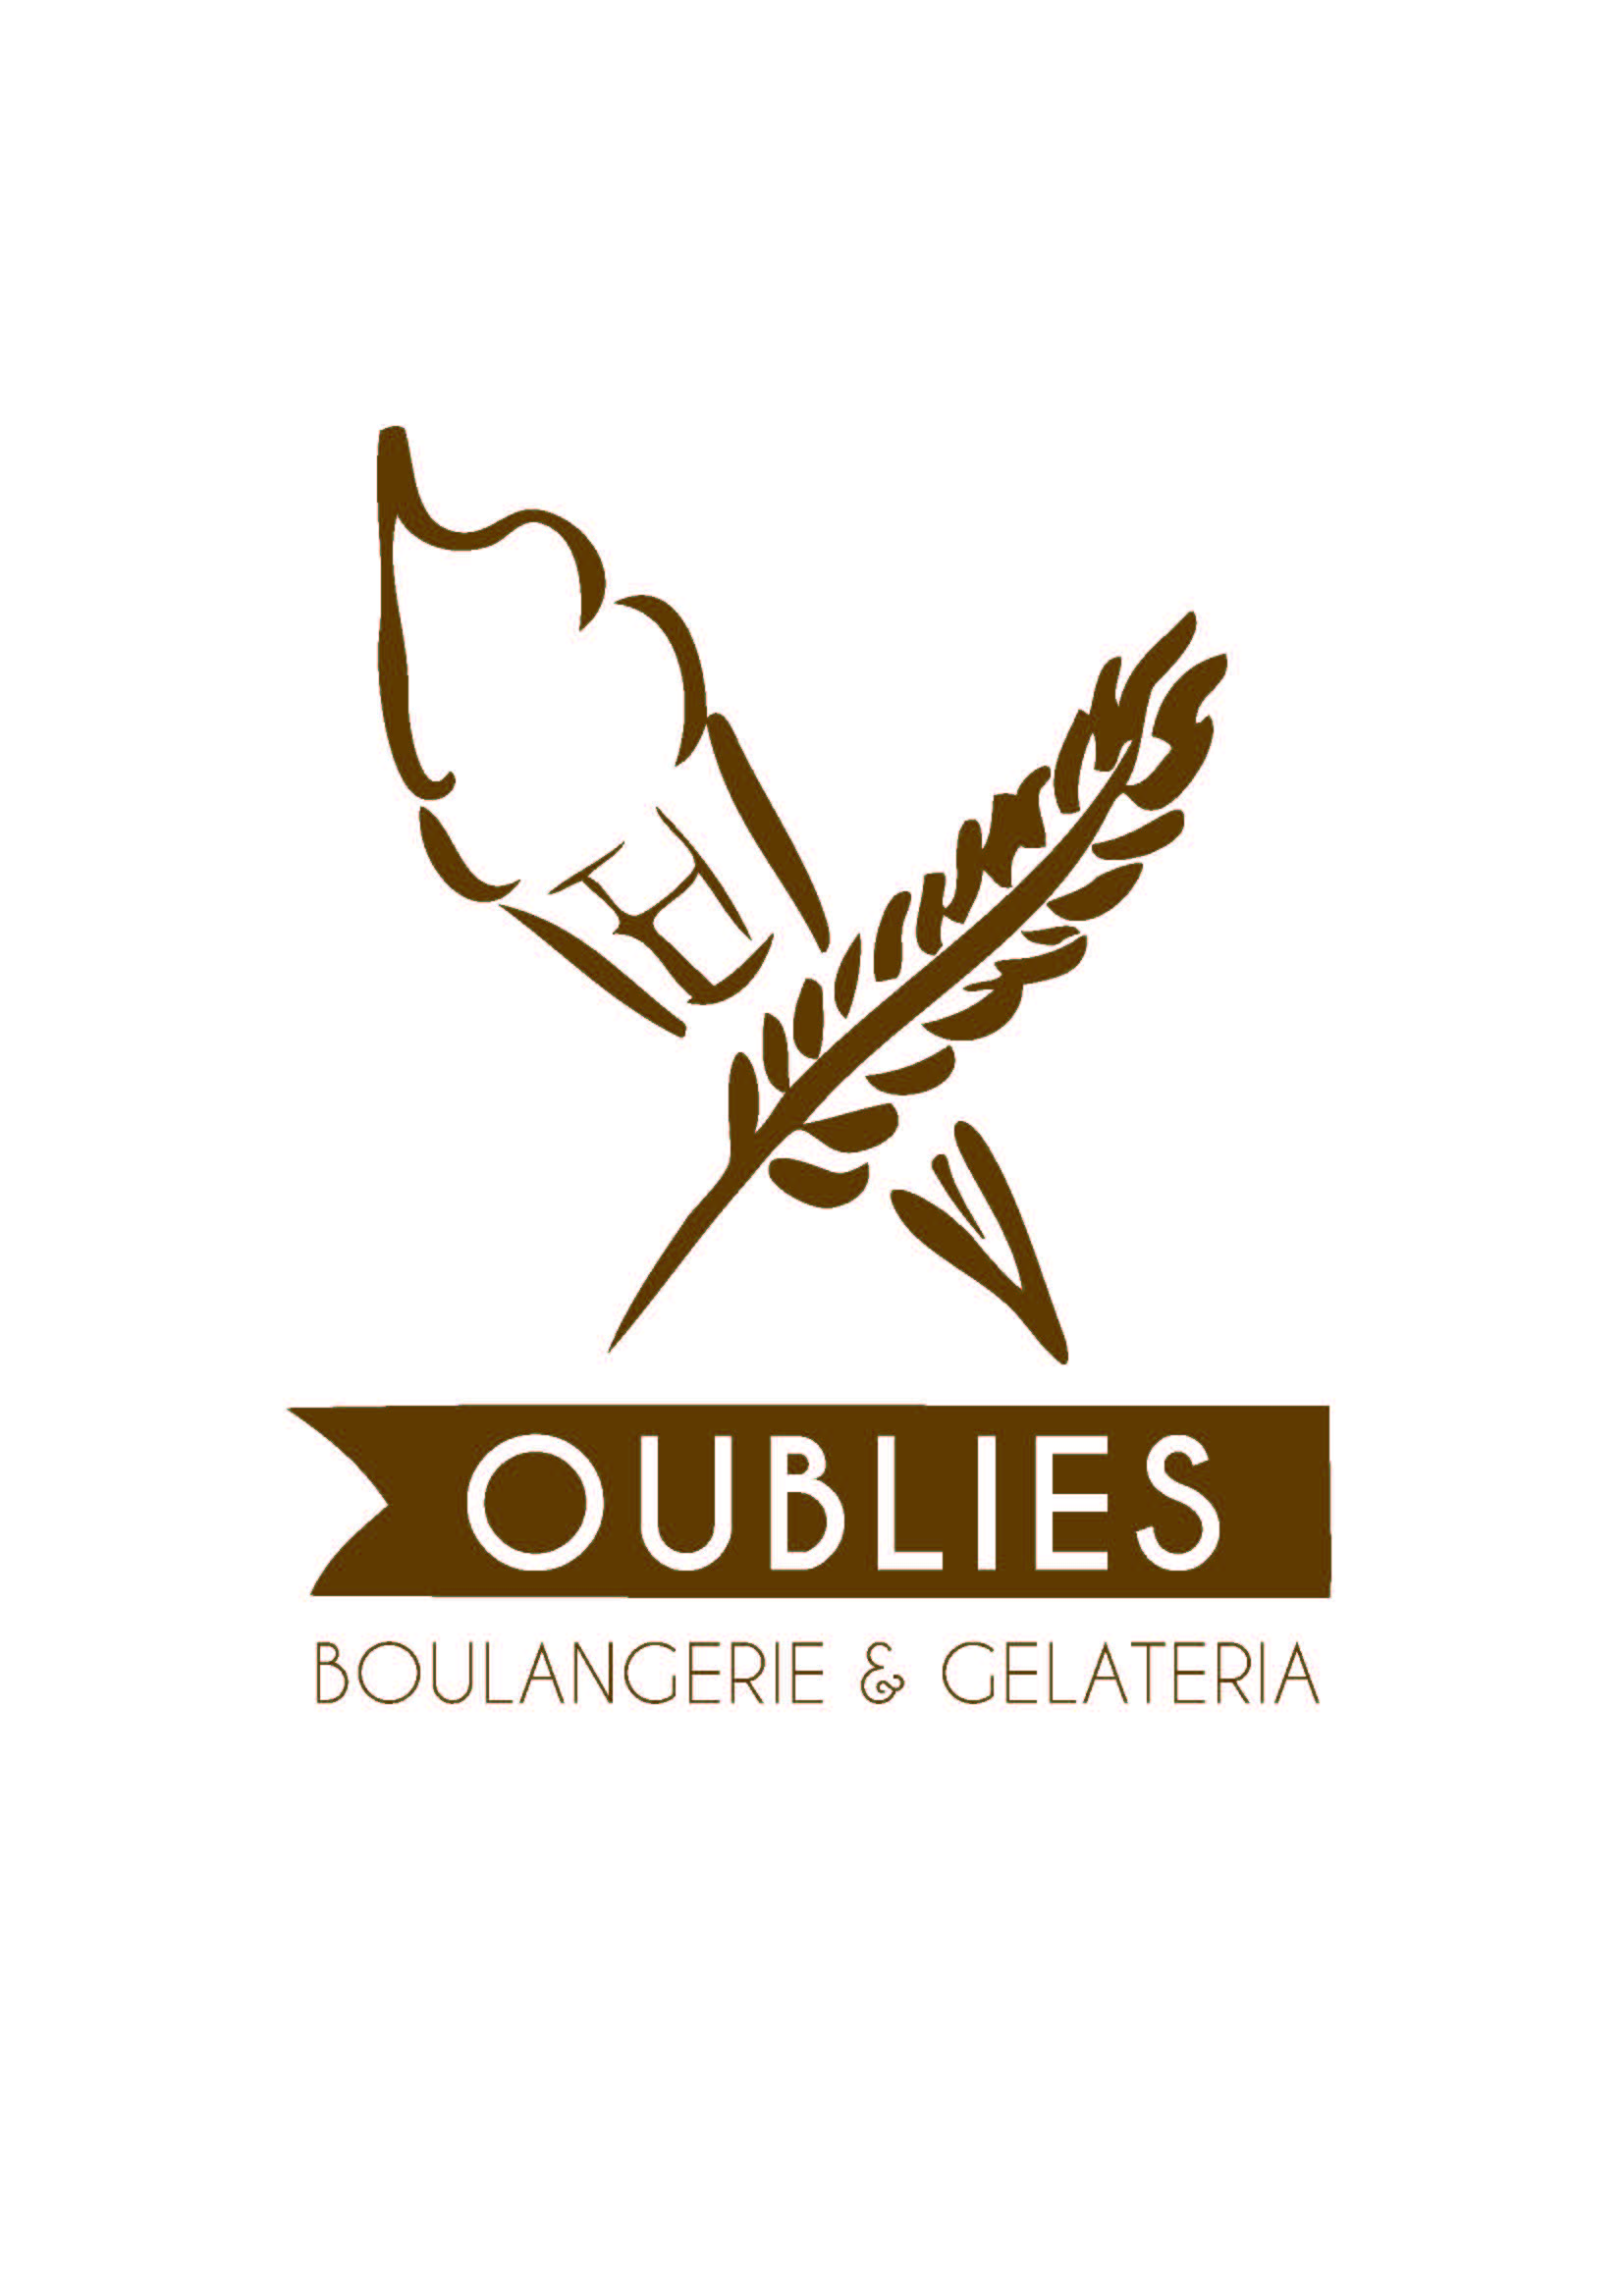 Oublies